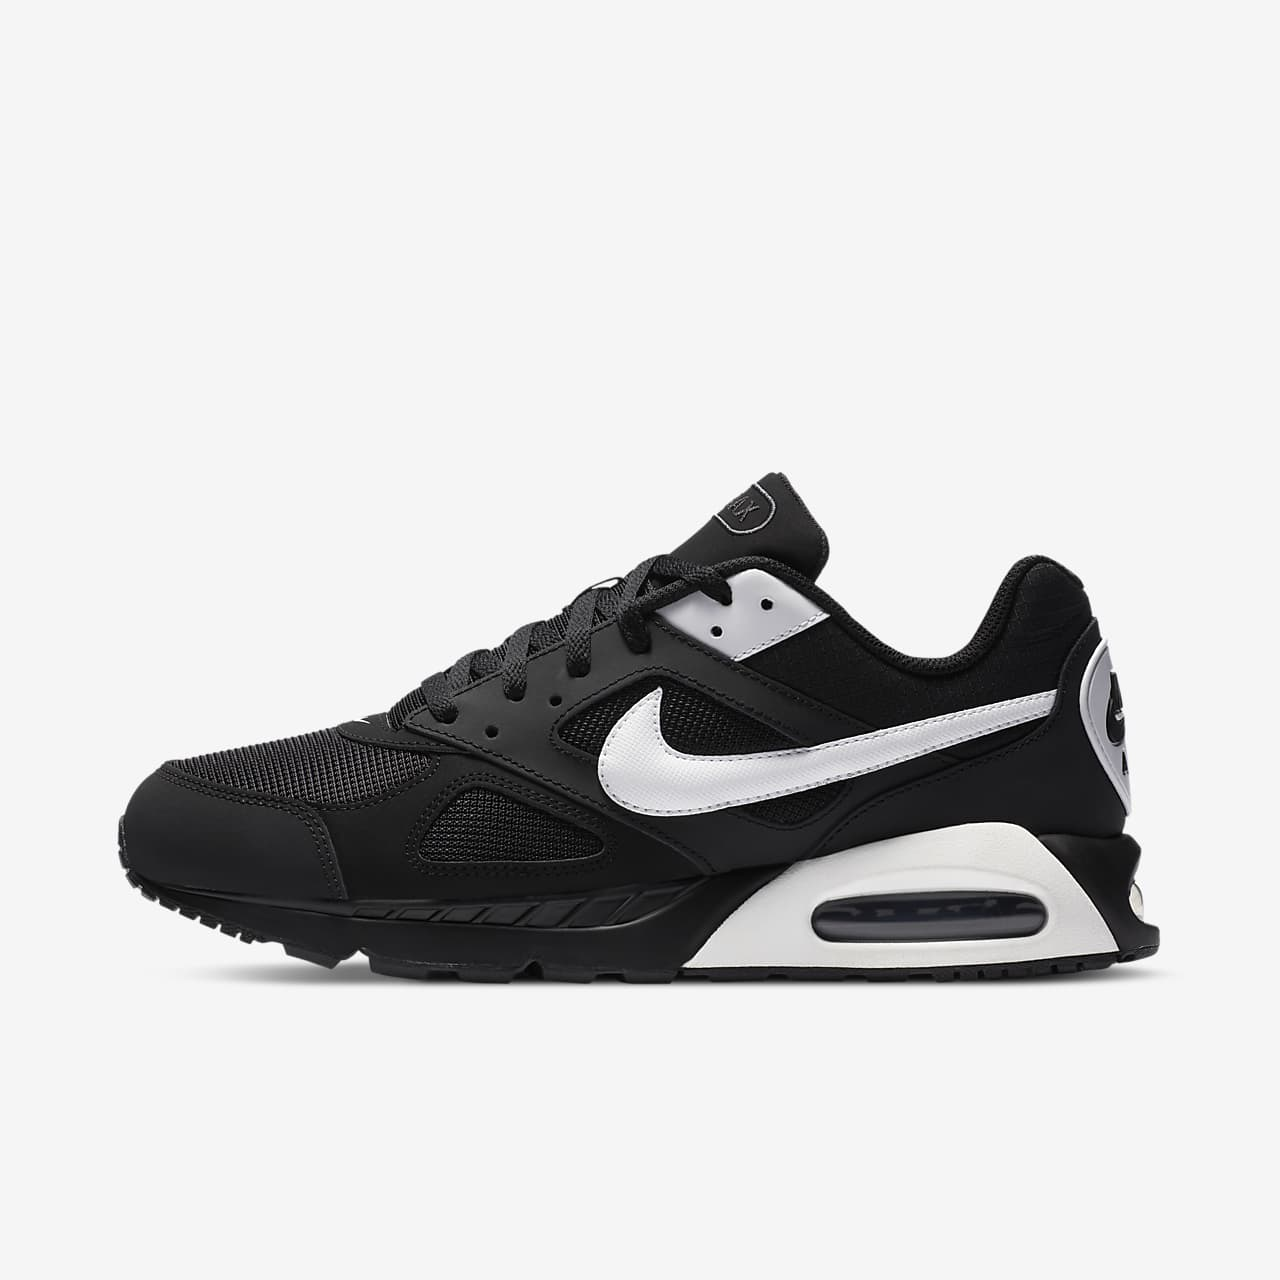 detailed look f08ba b21a6 Men s Shoe. Nike Air Max IVO